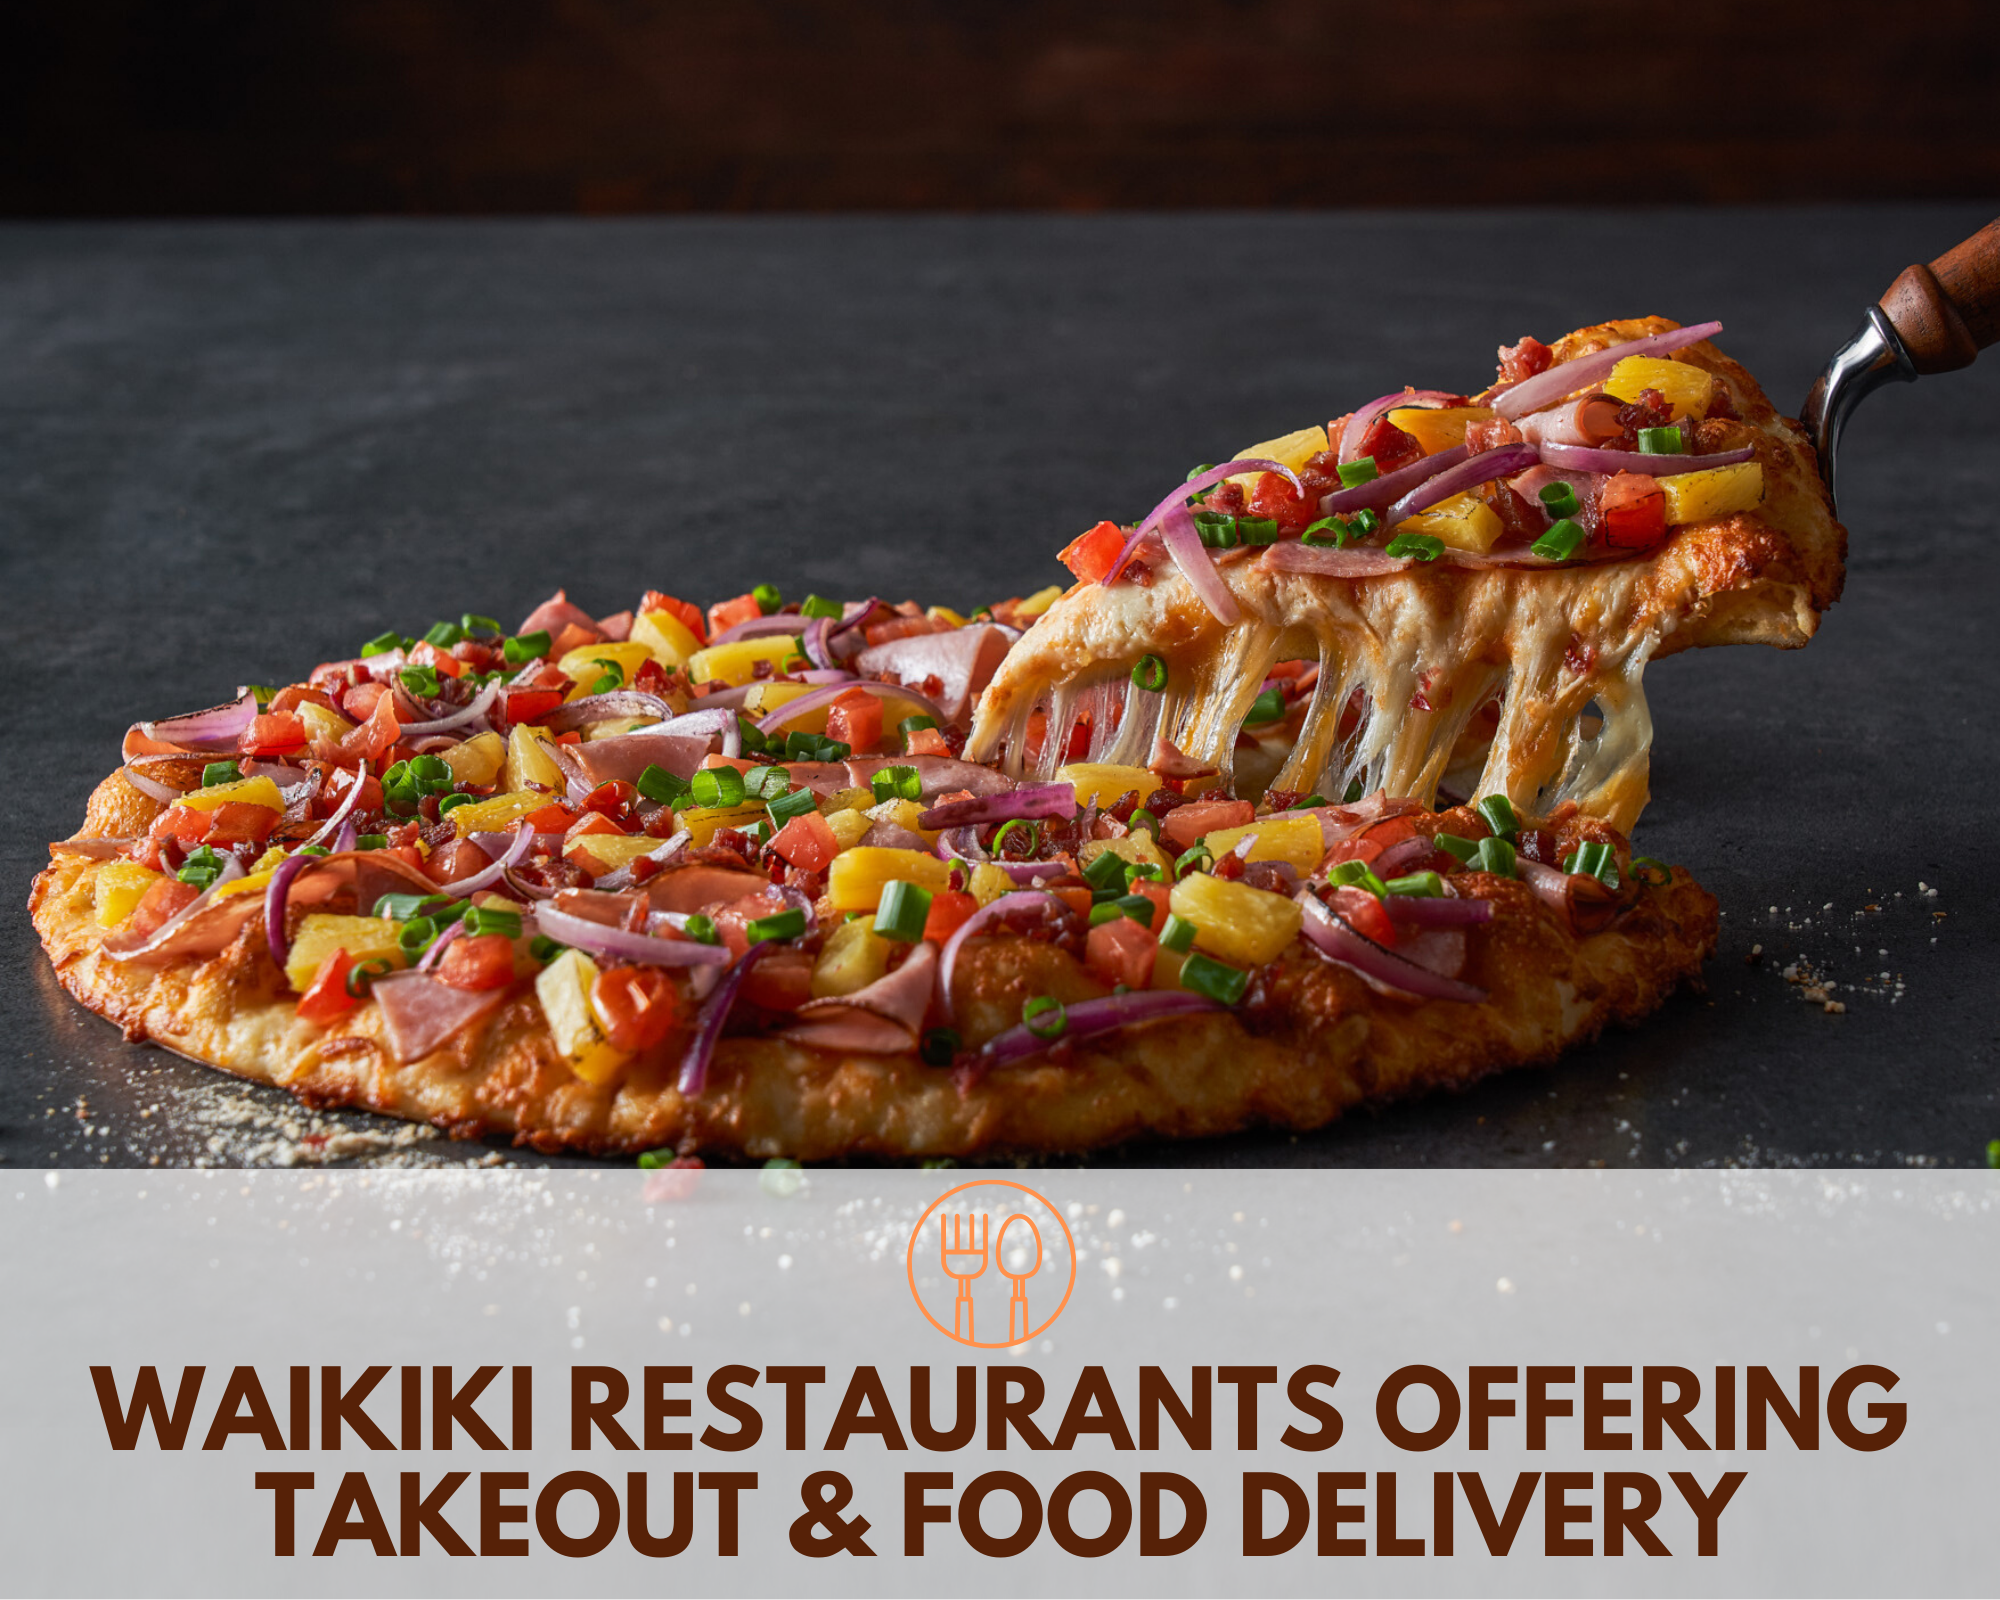 Waikiki Restaurants Offering Takeout and Food Delivery